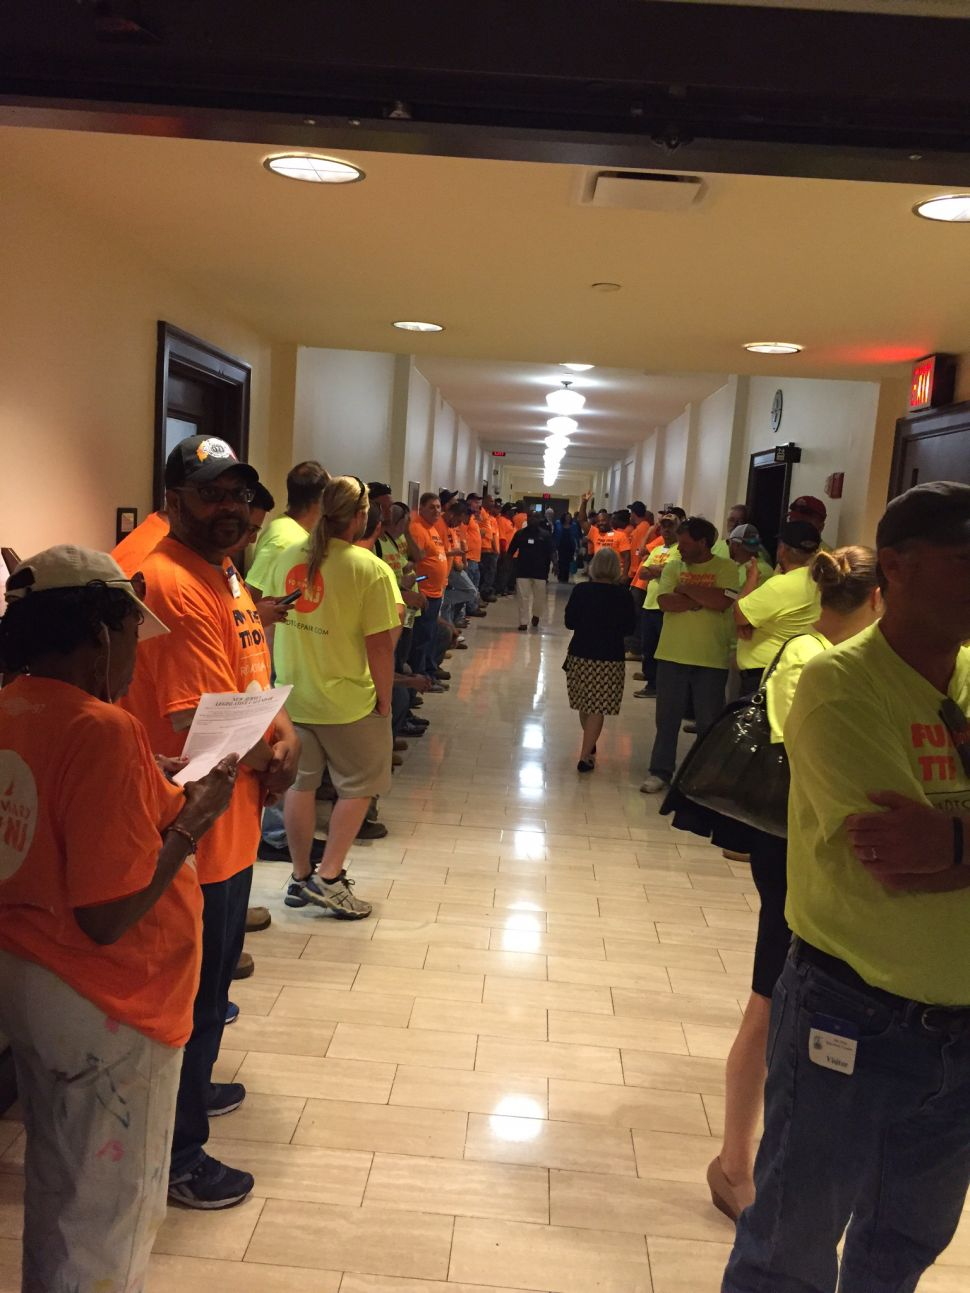 Labor Floods the Statehouse Ahead of TTF Vote